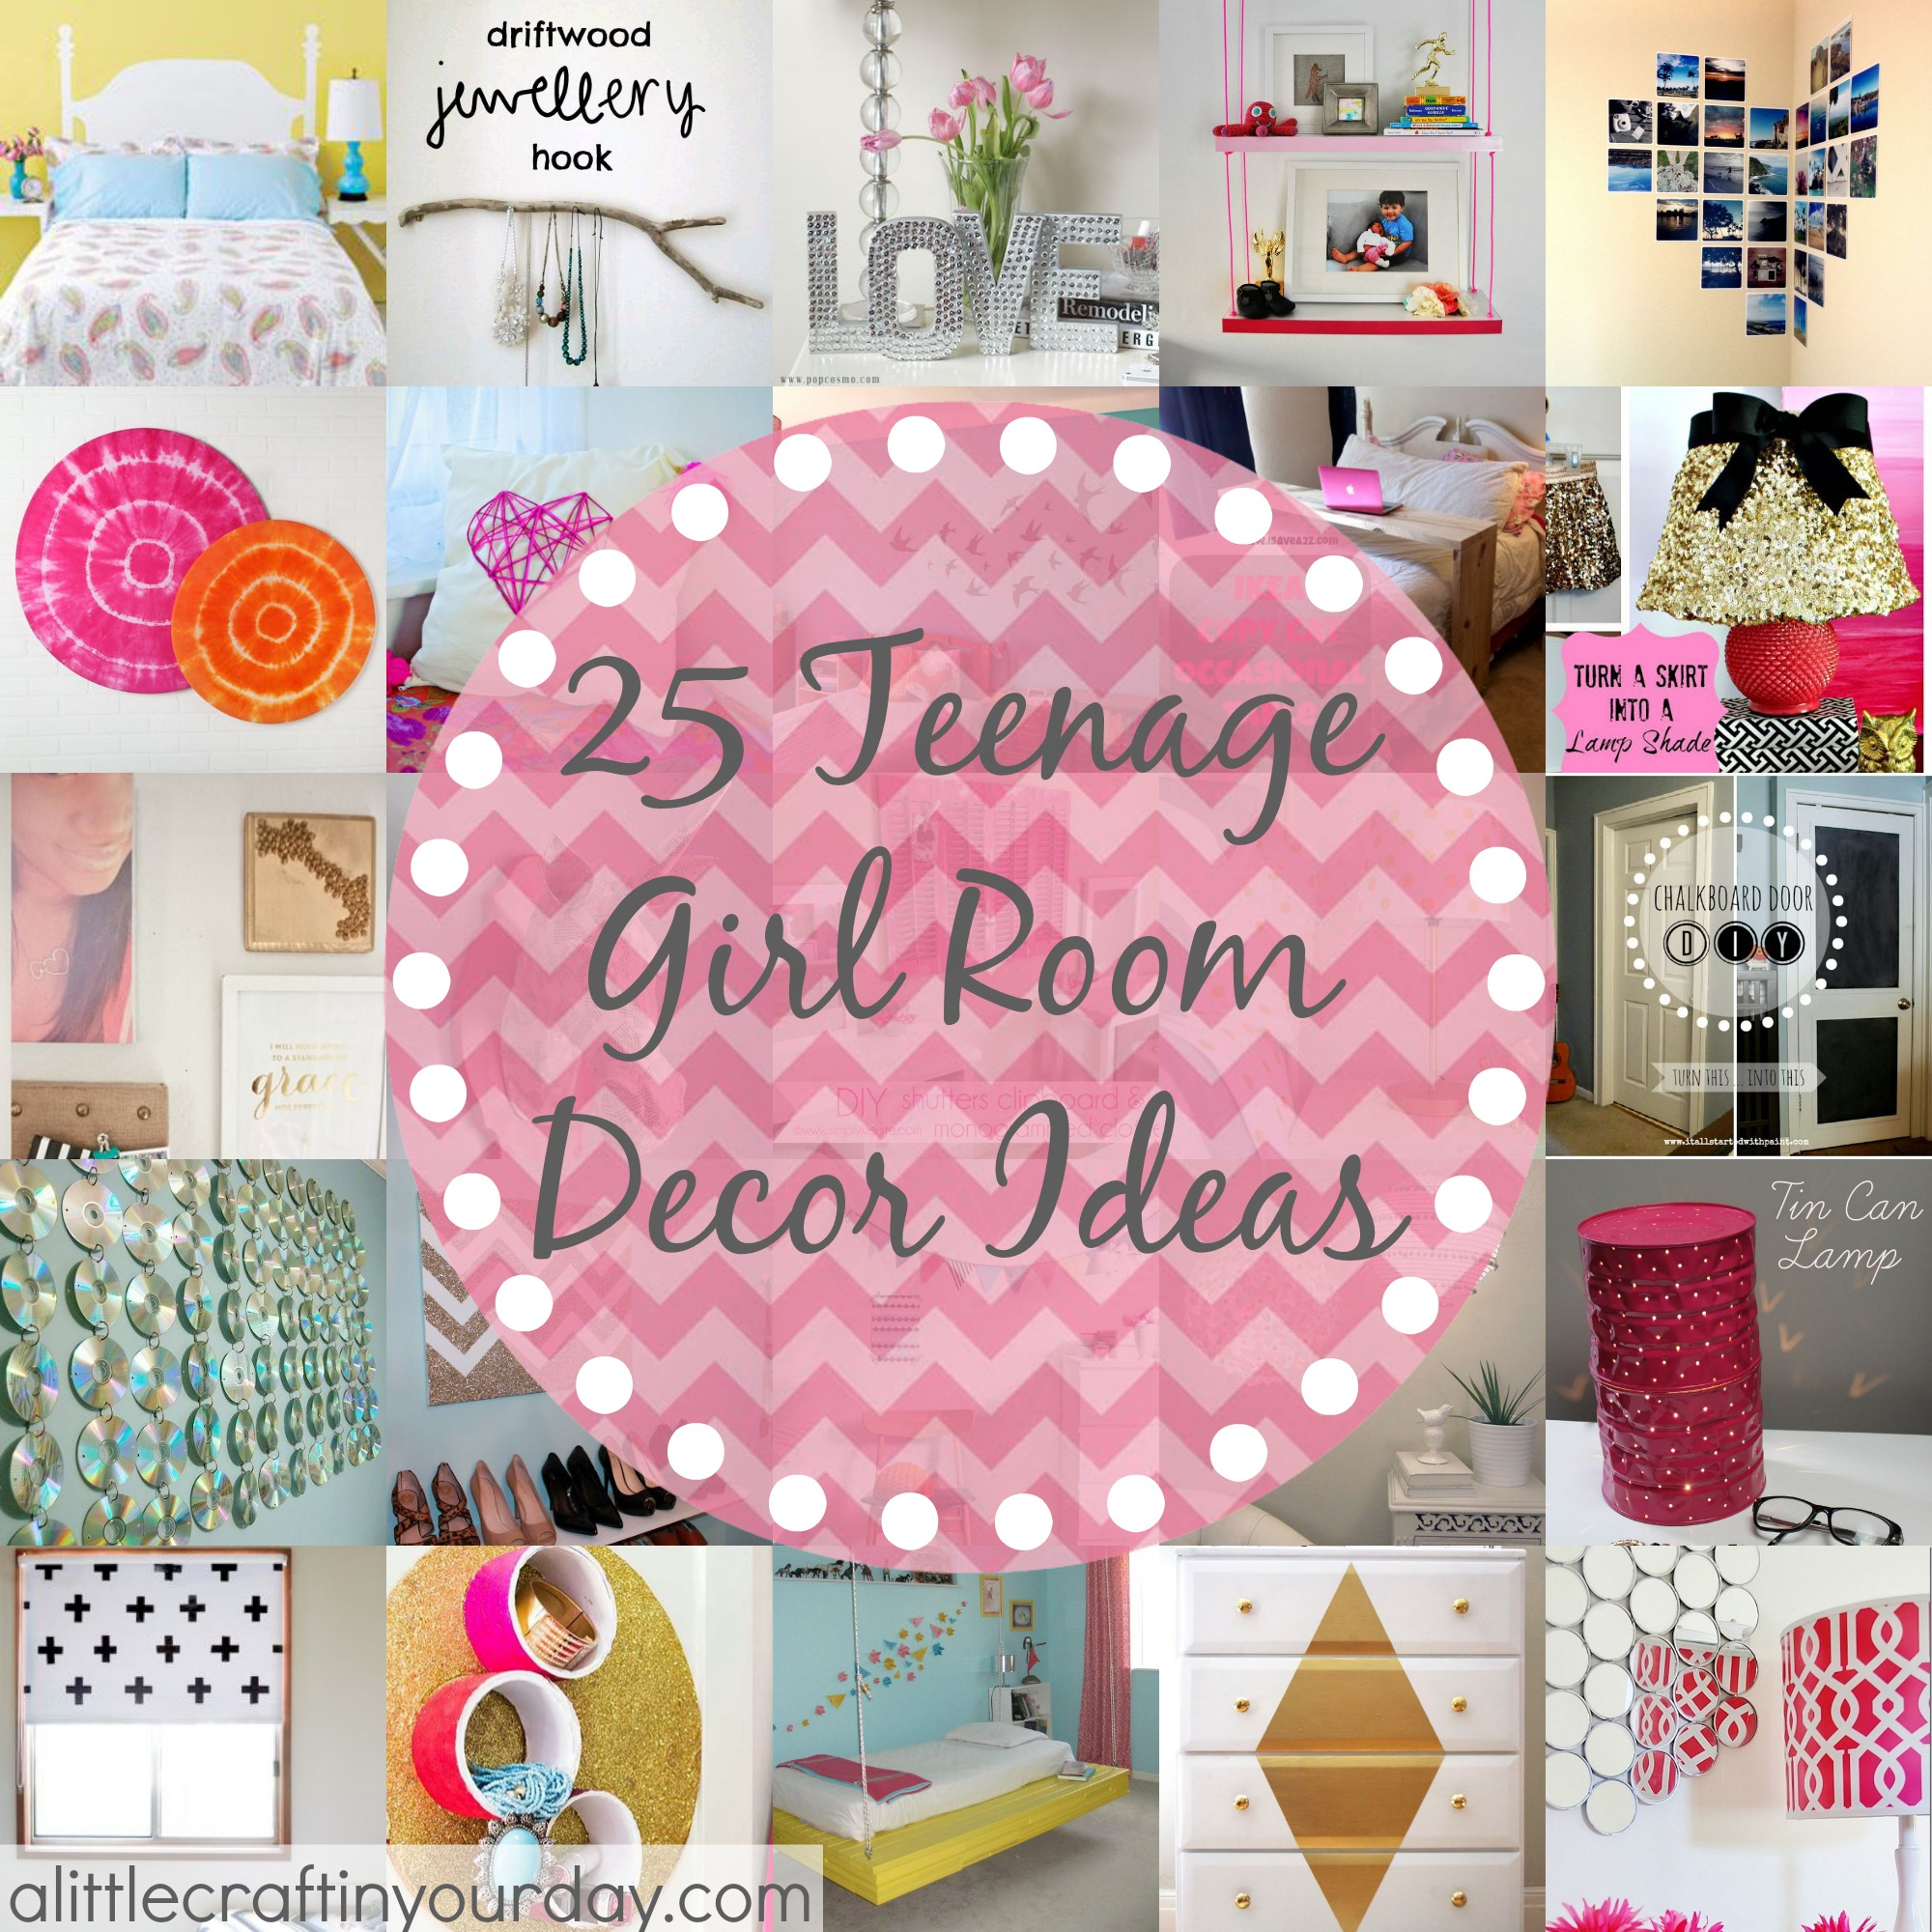 Exceptional 4/30 | 25 More Teenage Girl Room Decor Ideas